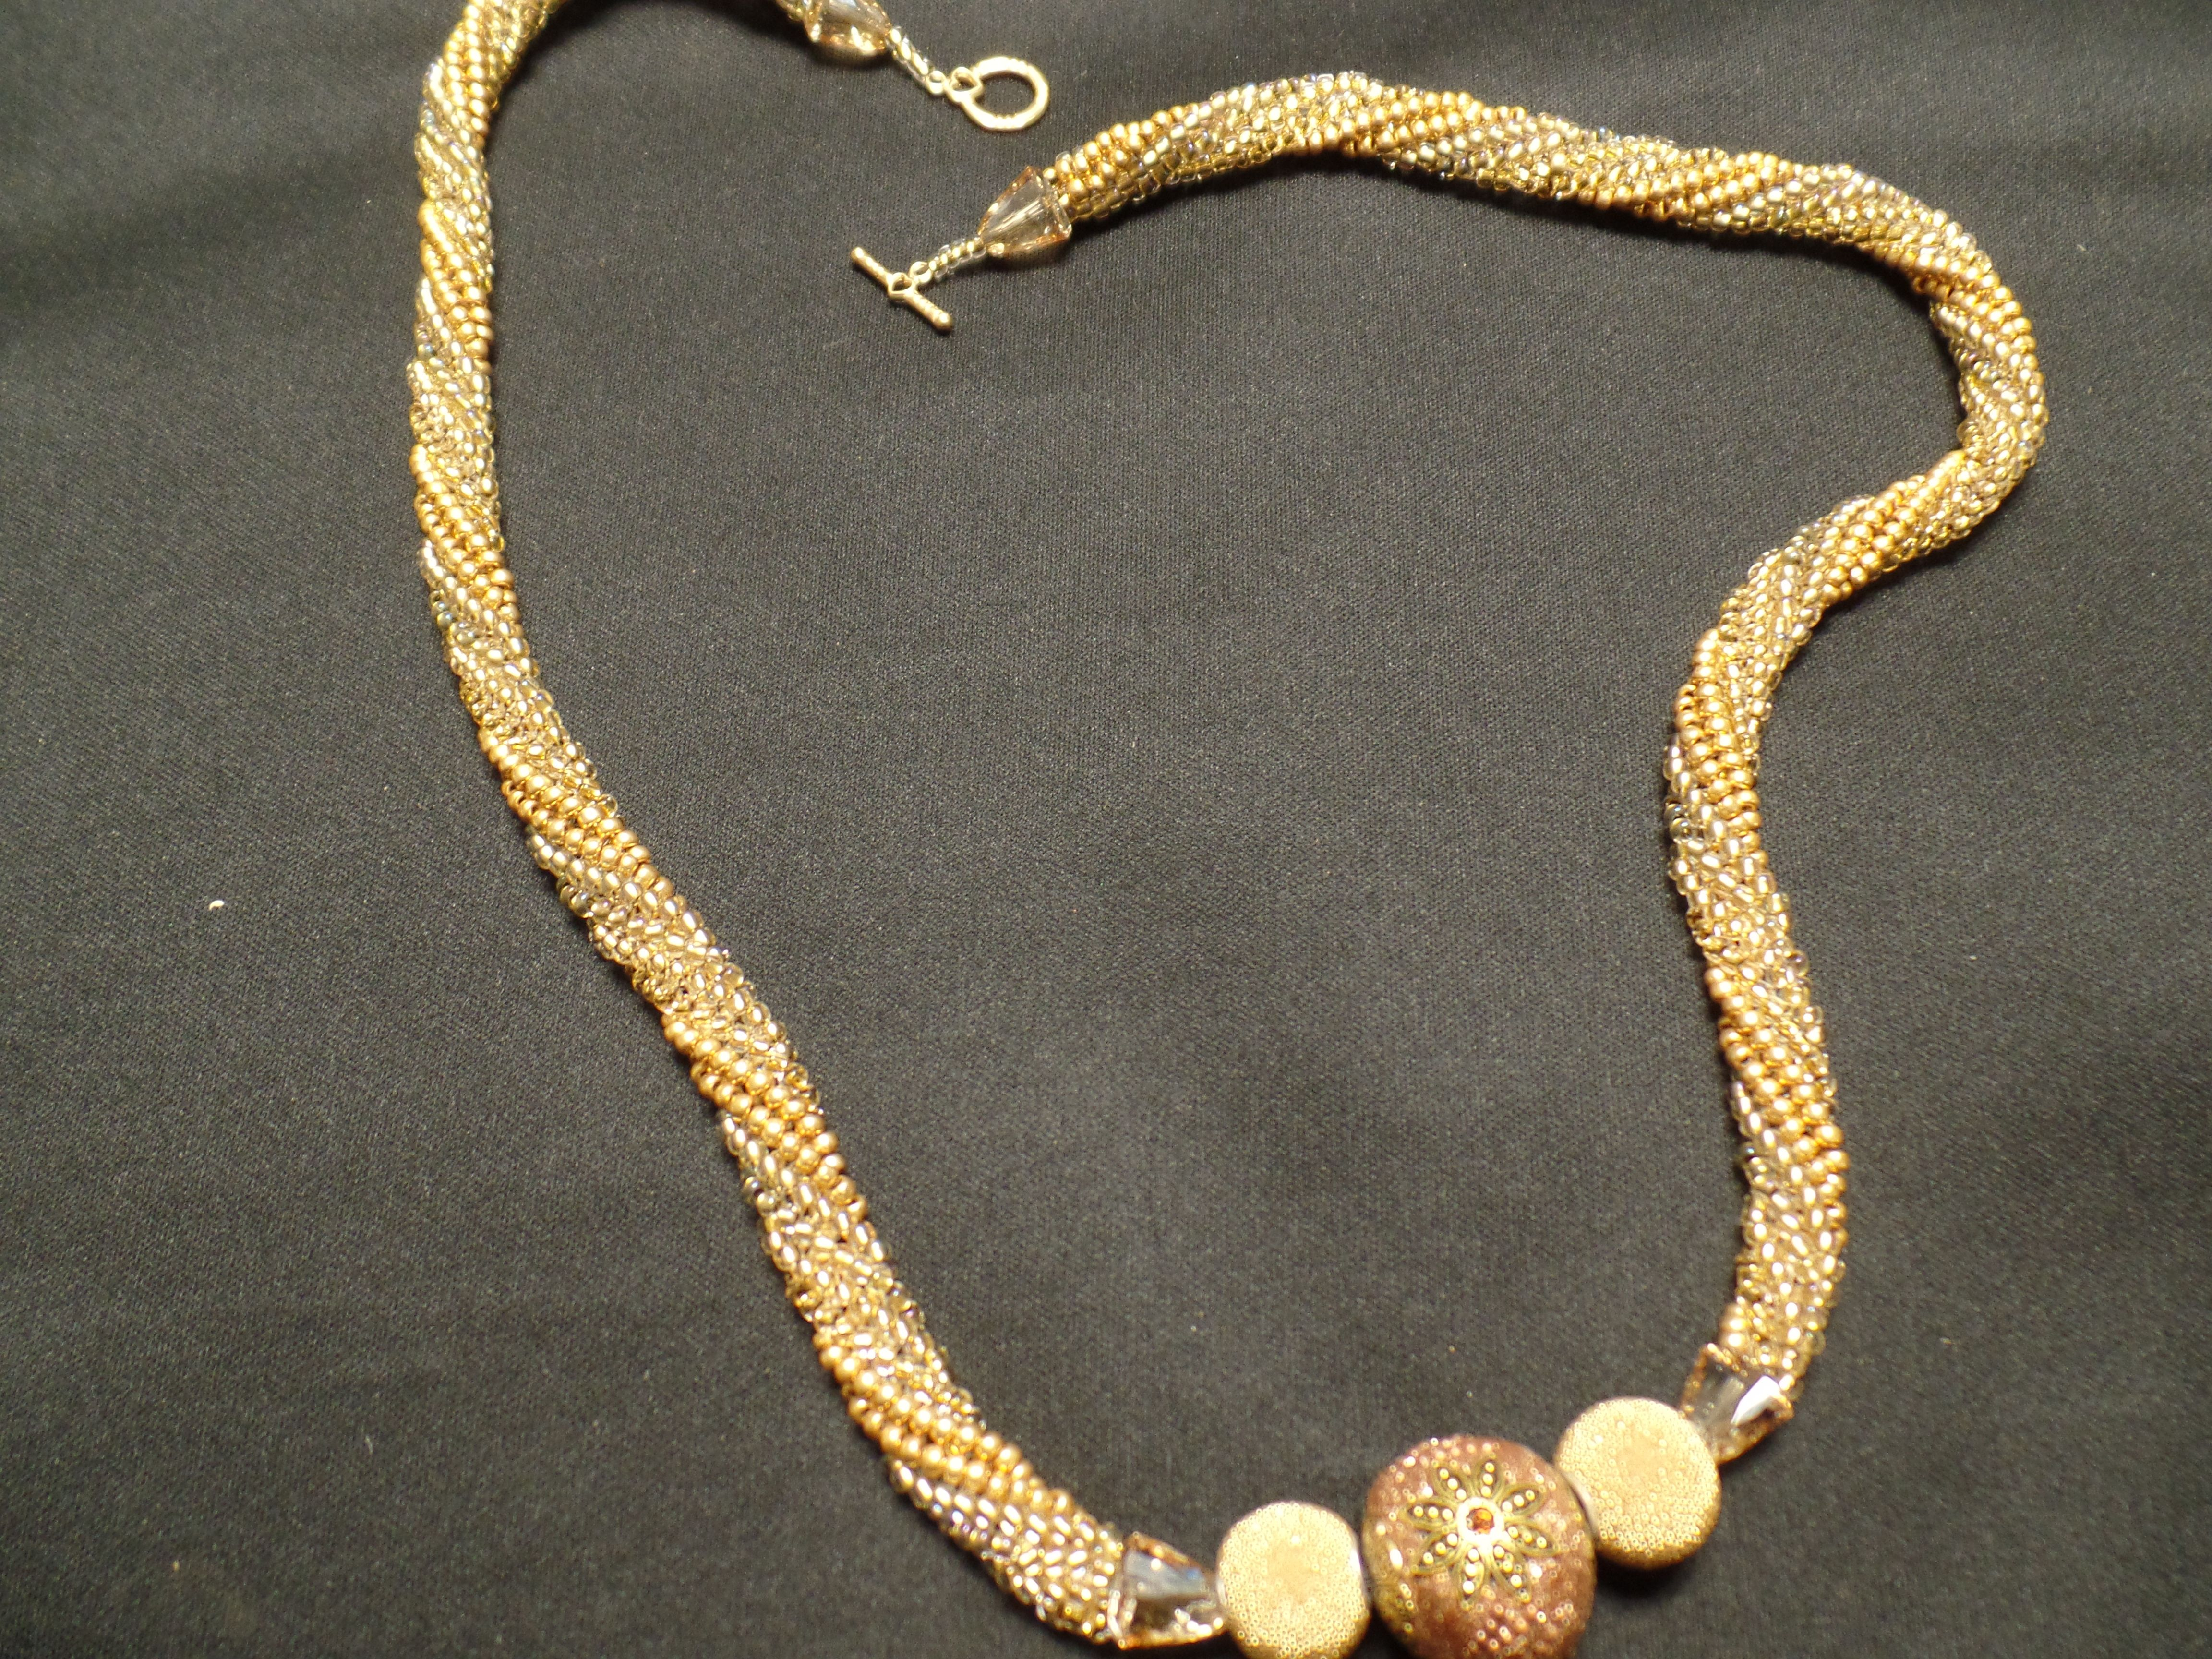 """Festive Holiday necklace made with three shades of gold beads, each finished with Swarovski crystal bead caps.  The fun center beads are from the Jesse James Bead Co. The necklace is 30"""" and ends with a toggle clasp.  $90.00 at www.mareekelley.etsy.com"""